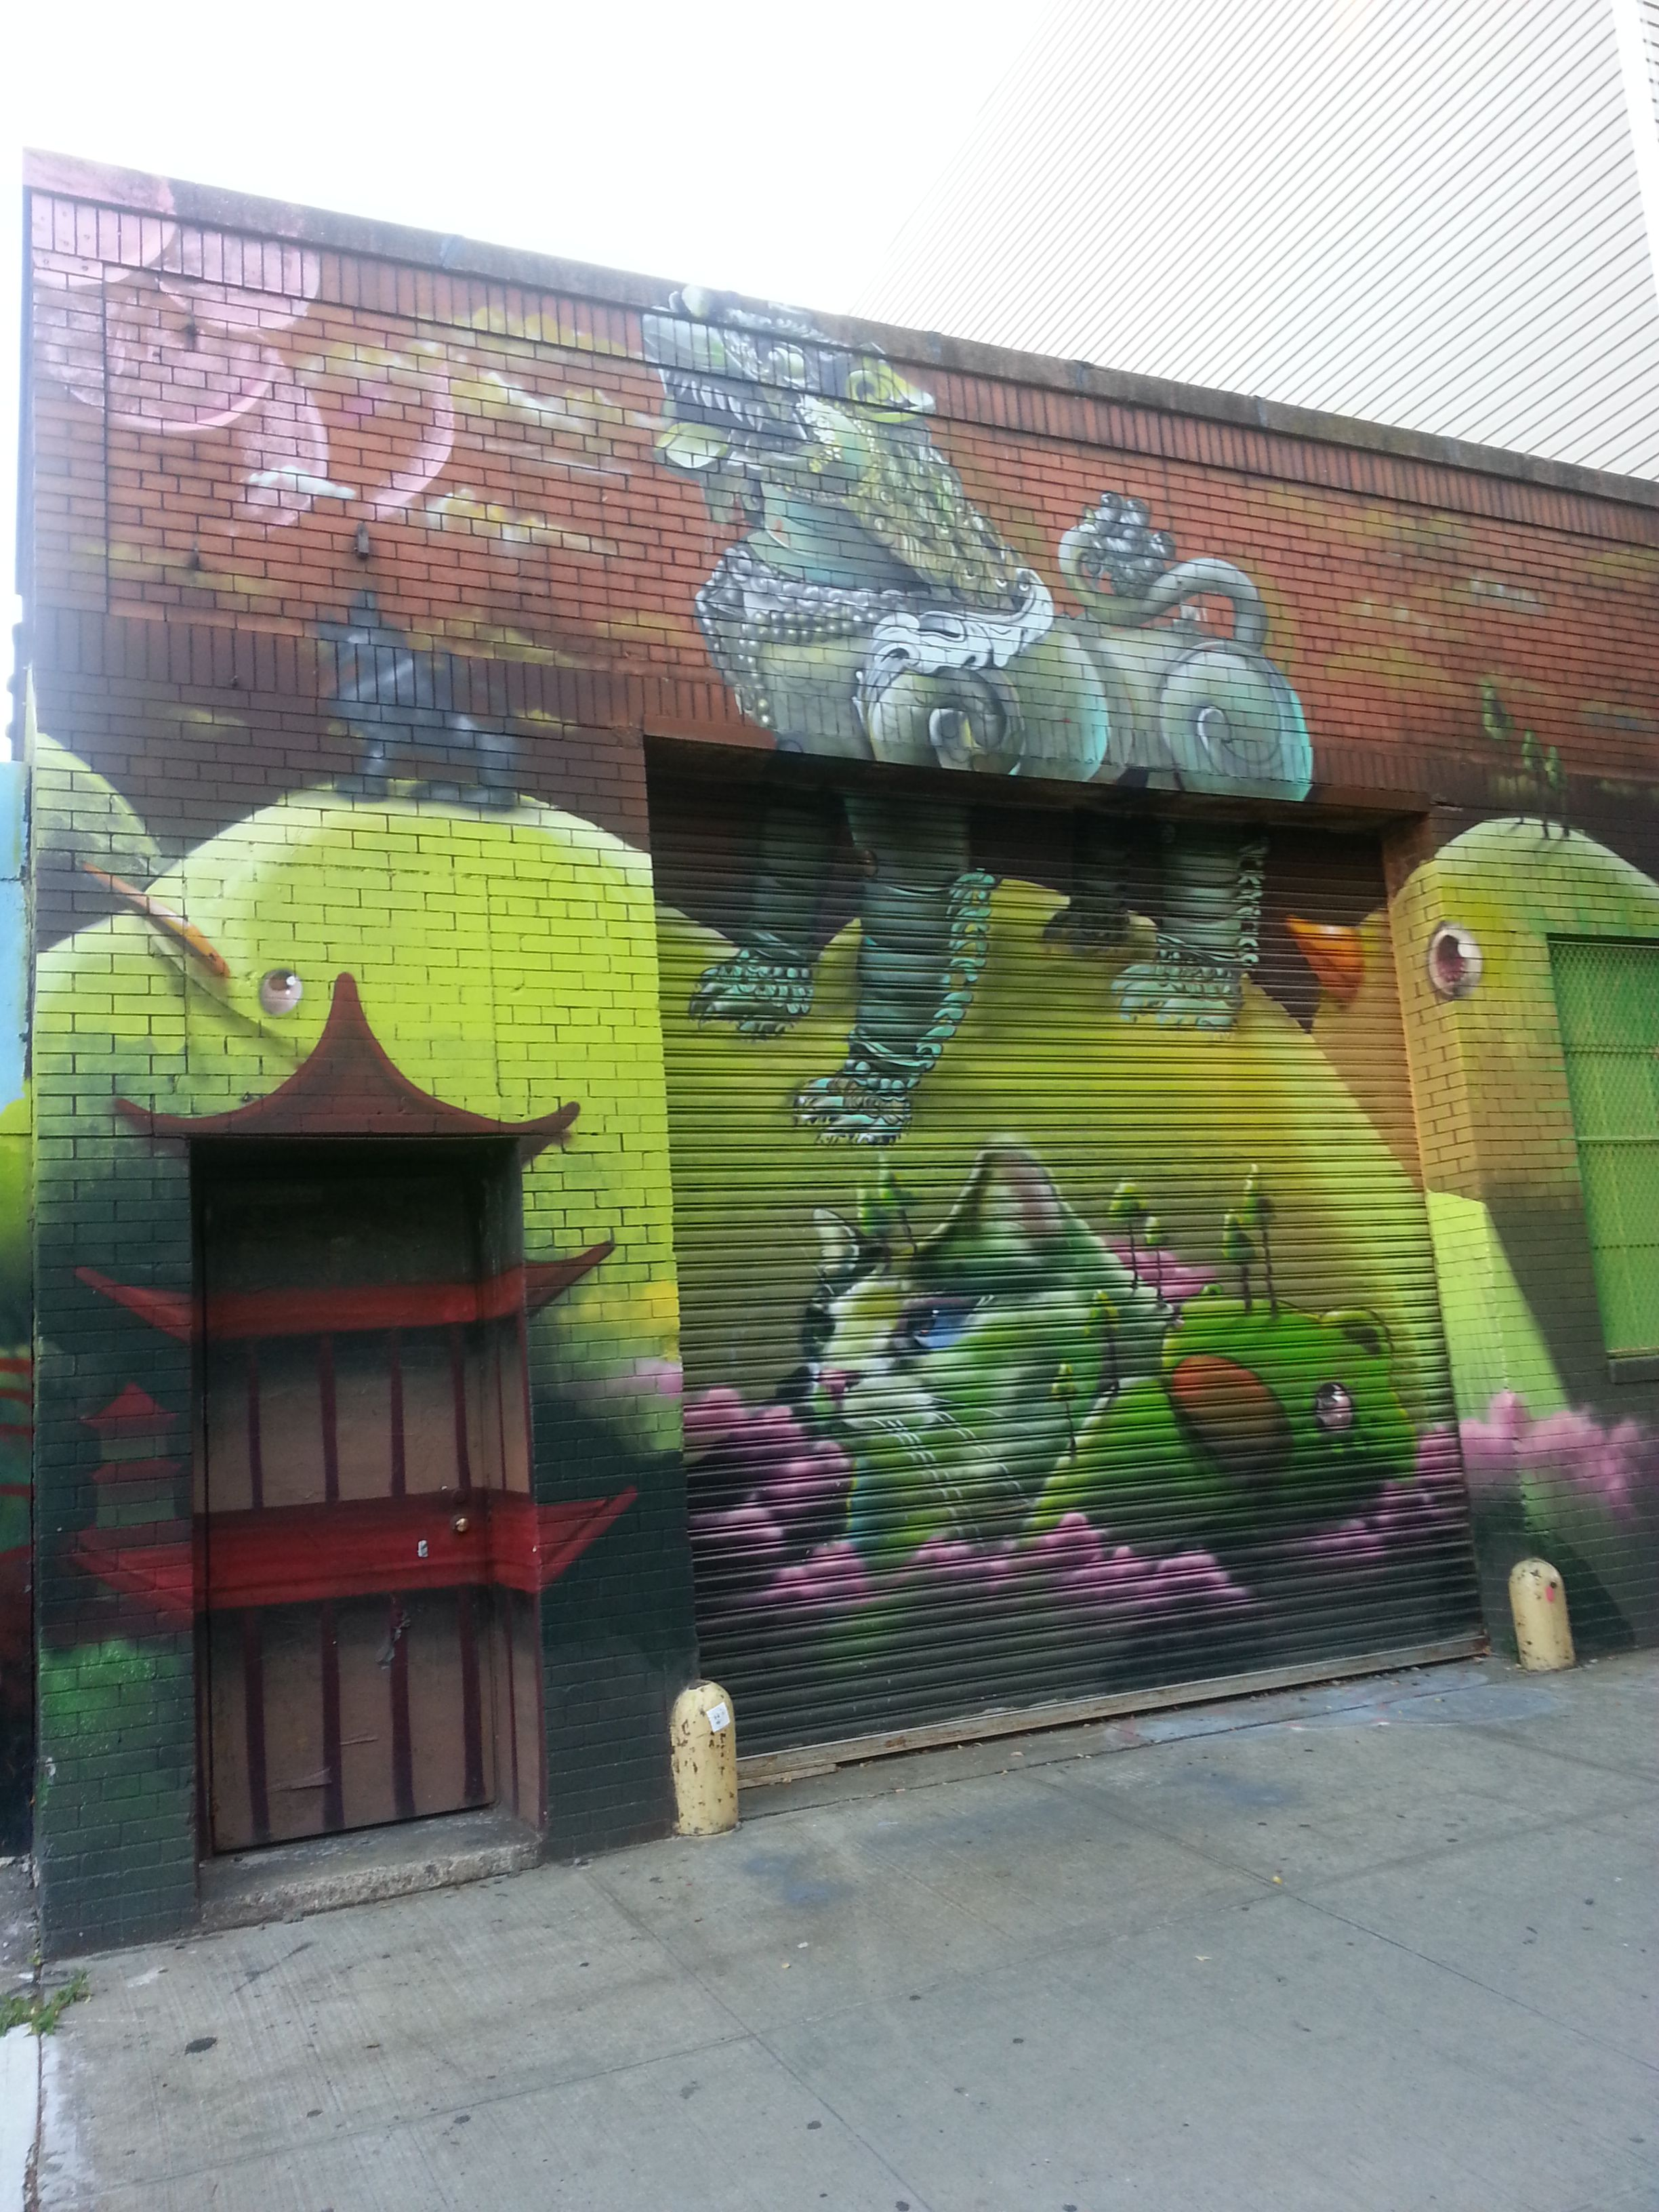 Dojo building art, Williamsburg, Brooklyn, NY